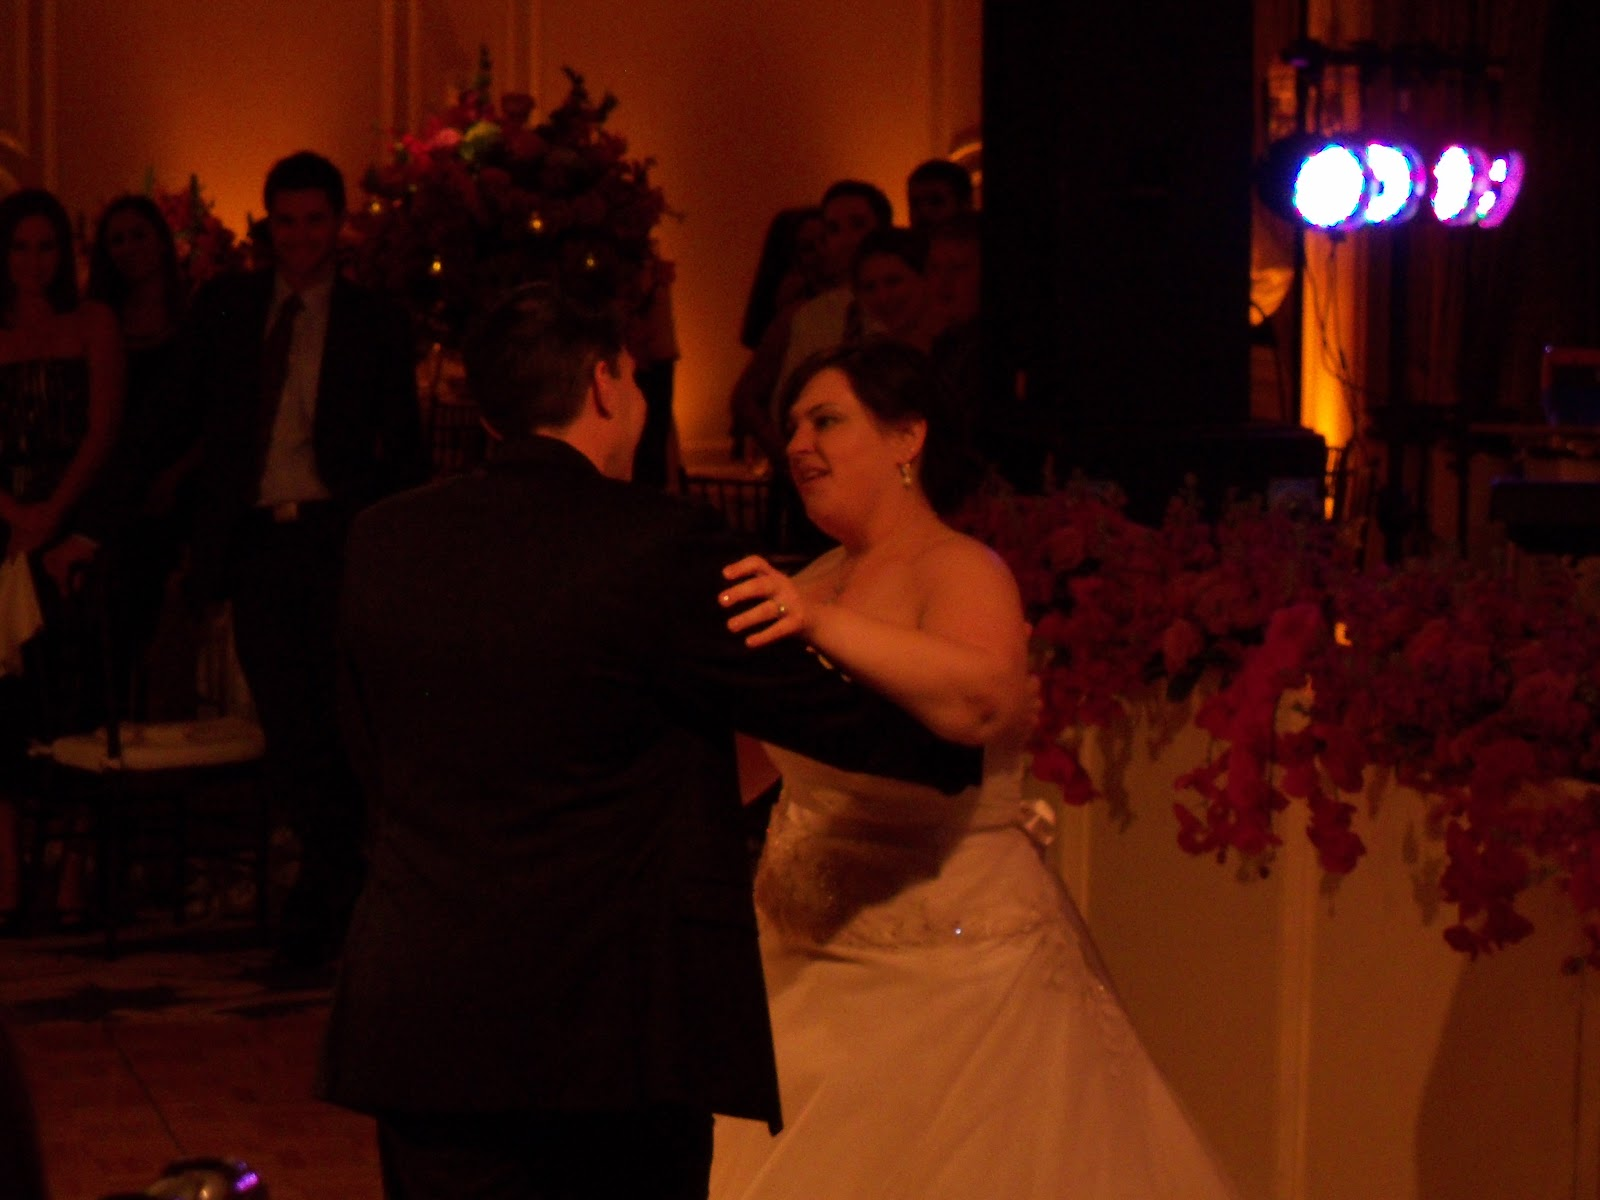 Megan Neal and Mark Suarez wedding - 100_8351.JPG